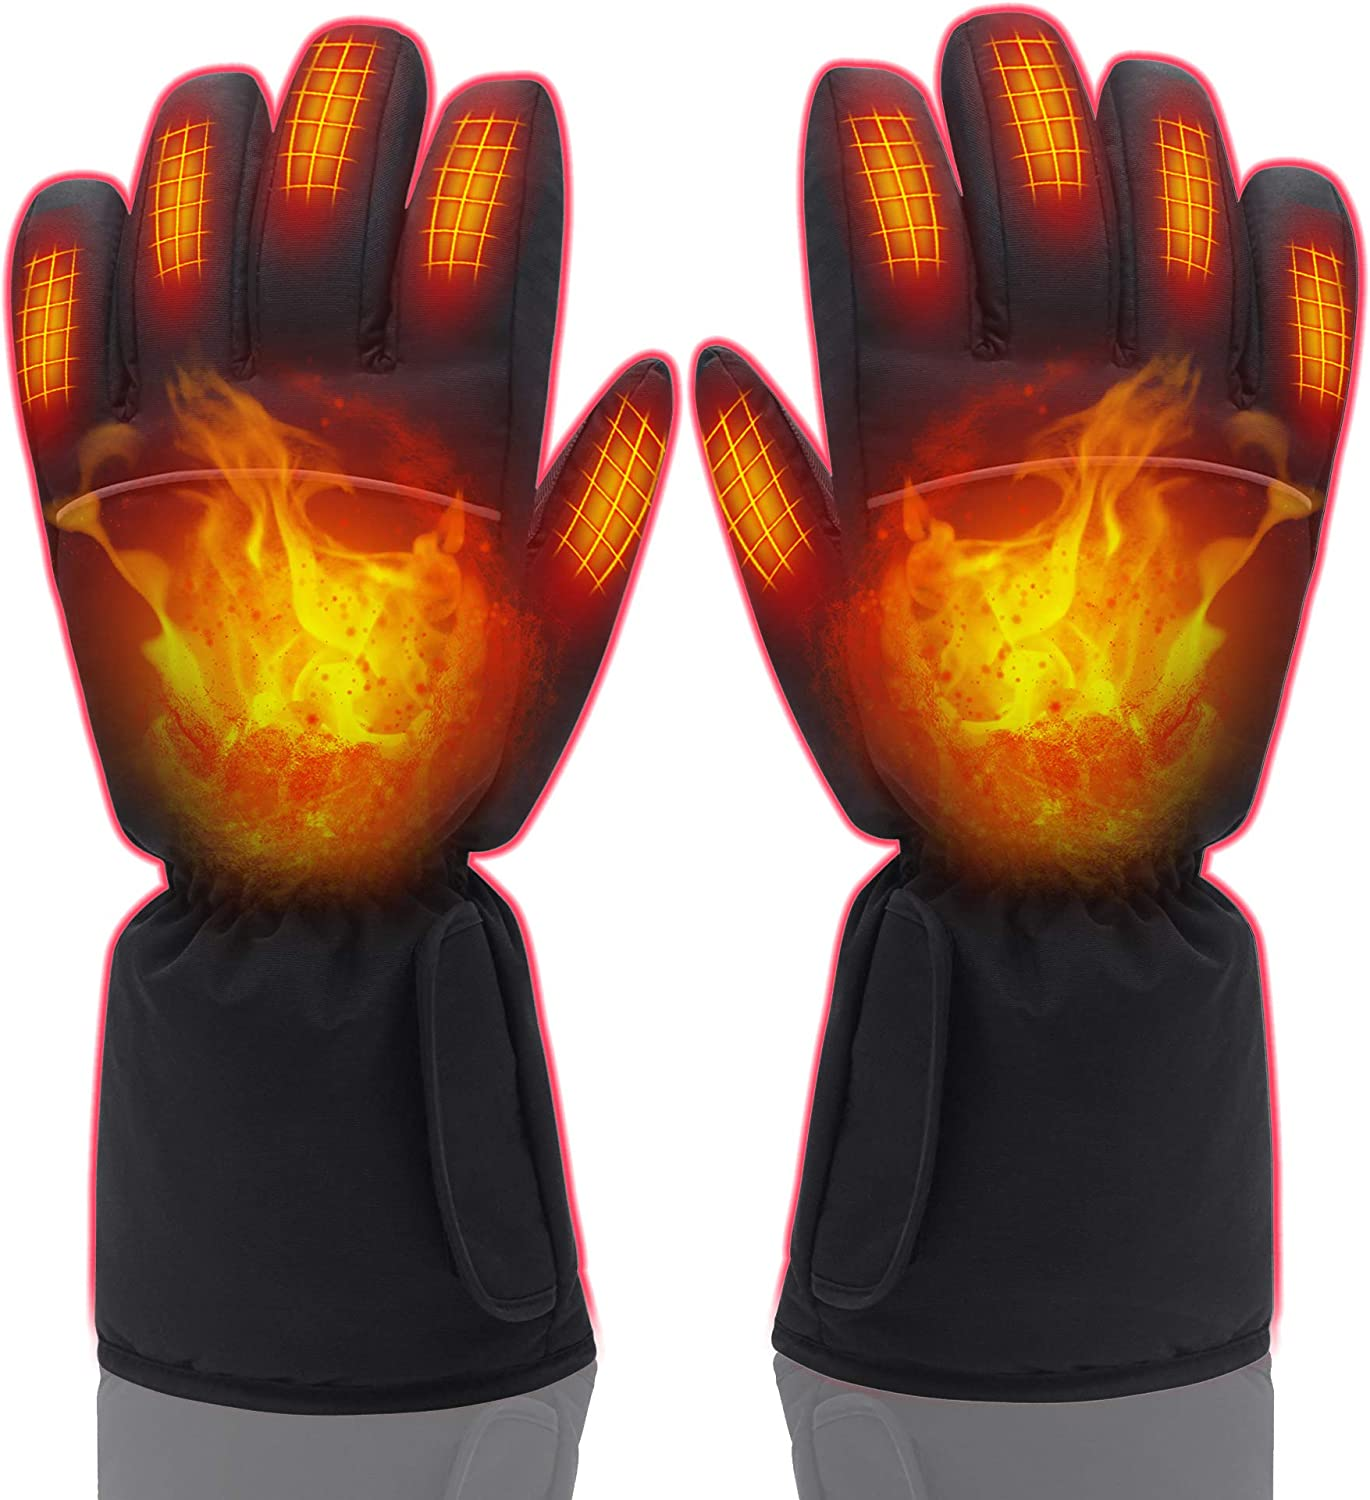 Woman Men Heated Gloves, Electric Heating Gloves Rechargeable Winter Hand Warmers Gloves for Chronically Cold HandWoman Men Electric Heated Gloves,Hand Warmers Gloves for Chronically Cold Hand